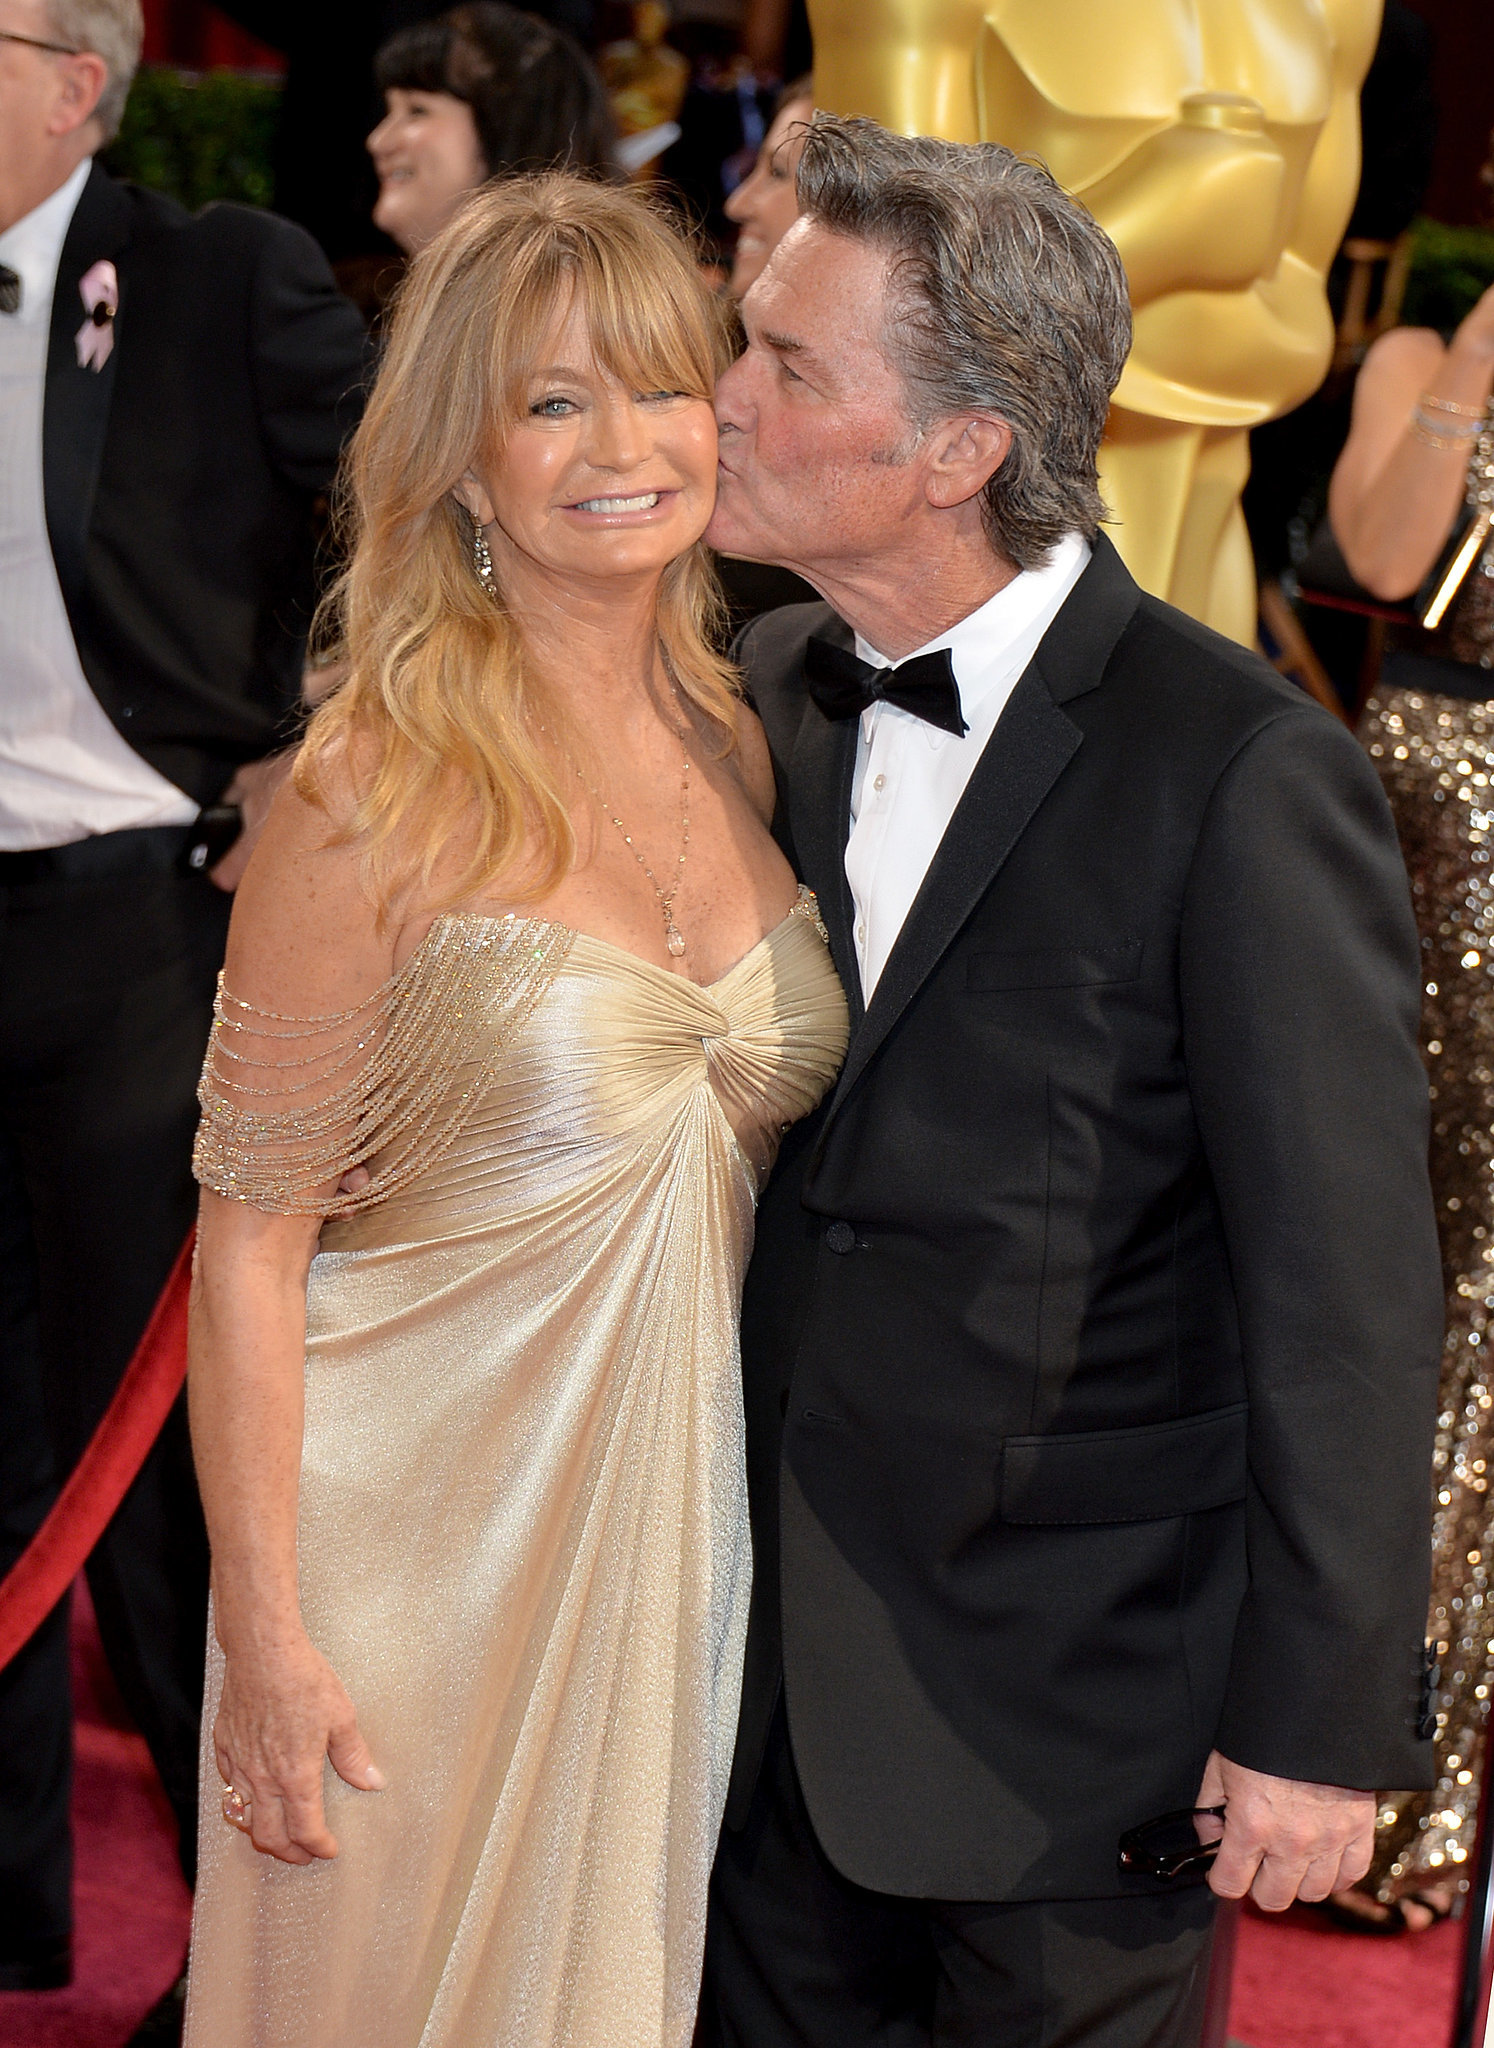 Kurt Russell gave Goldie Hawn a kiss on the red carpet — they were just one of many sweet couples at the Oscars.